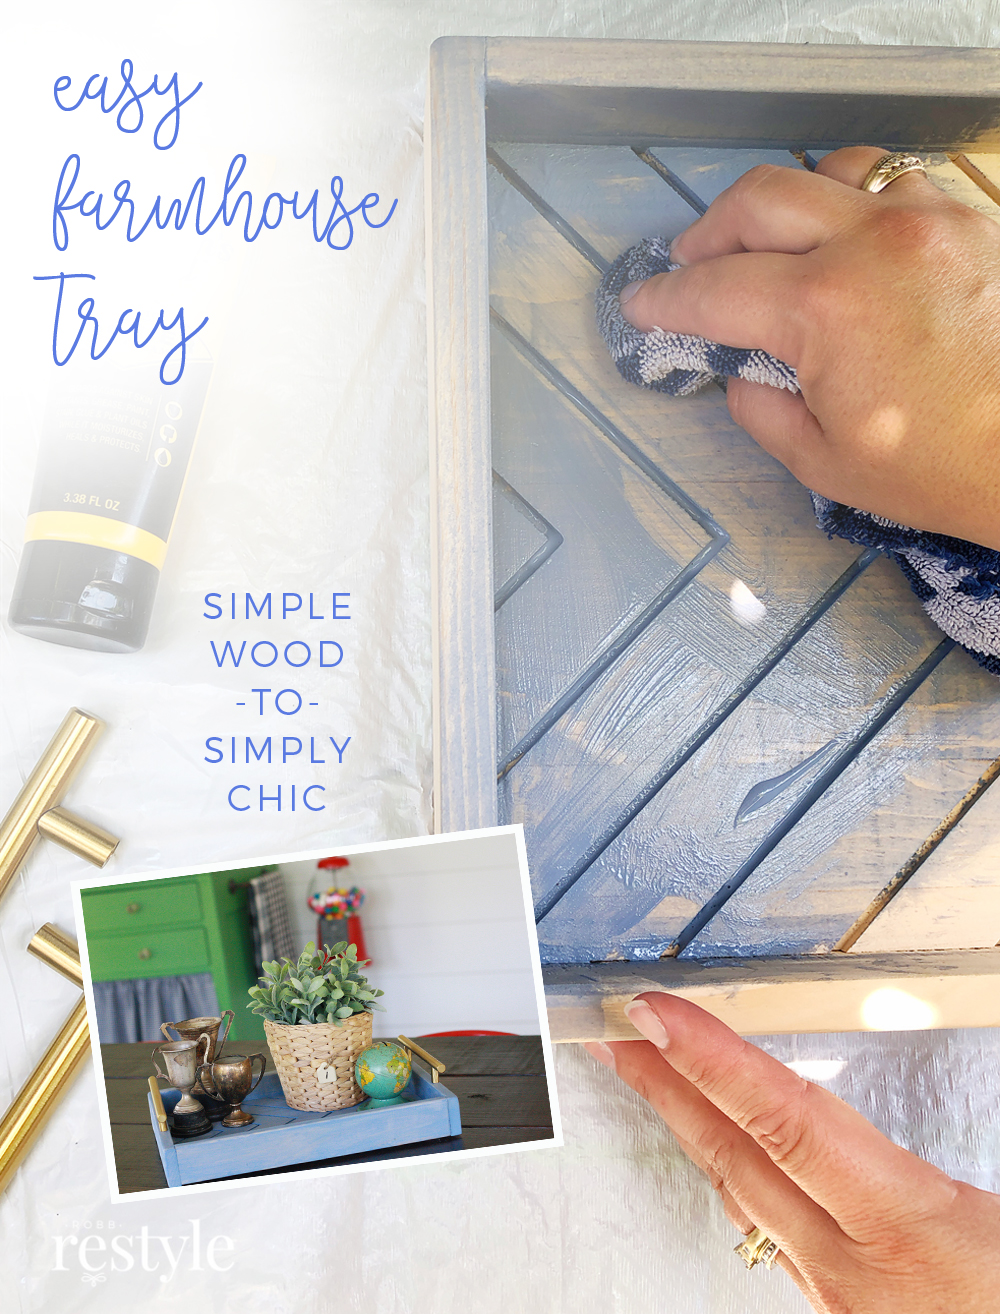 Easy DIY Farmhouse Tray - Blue and Green Color Palette